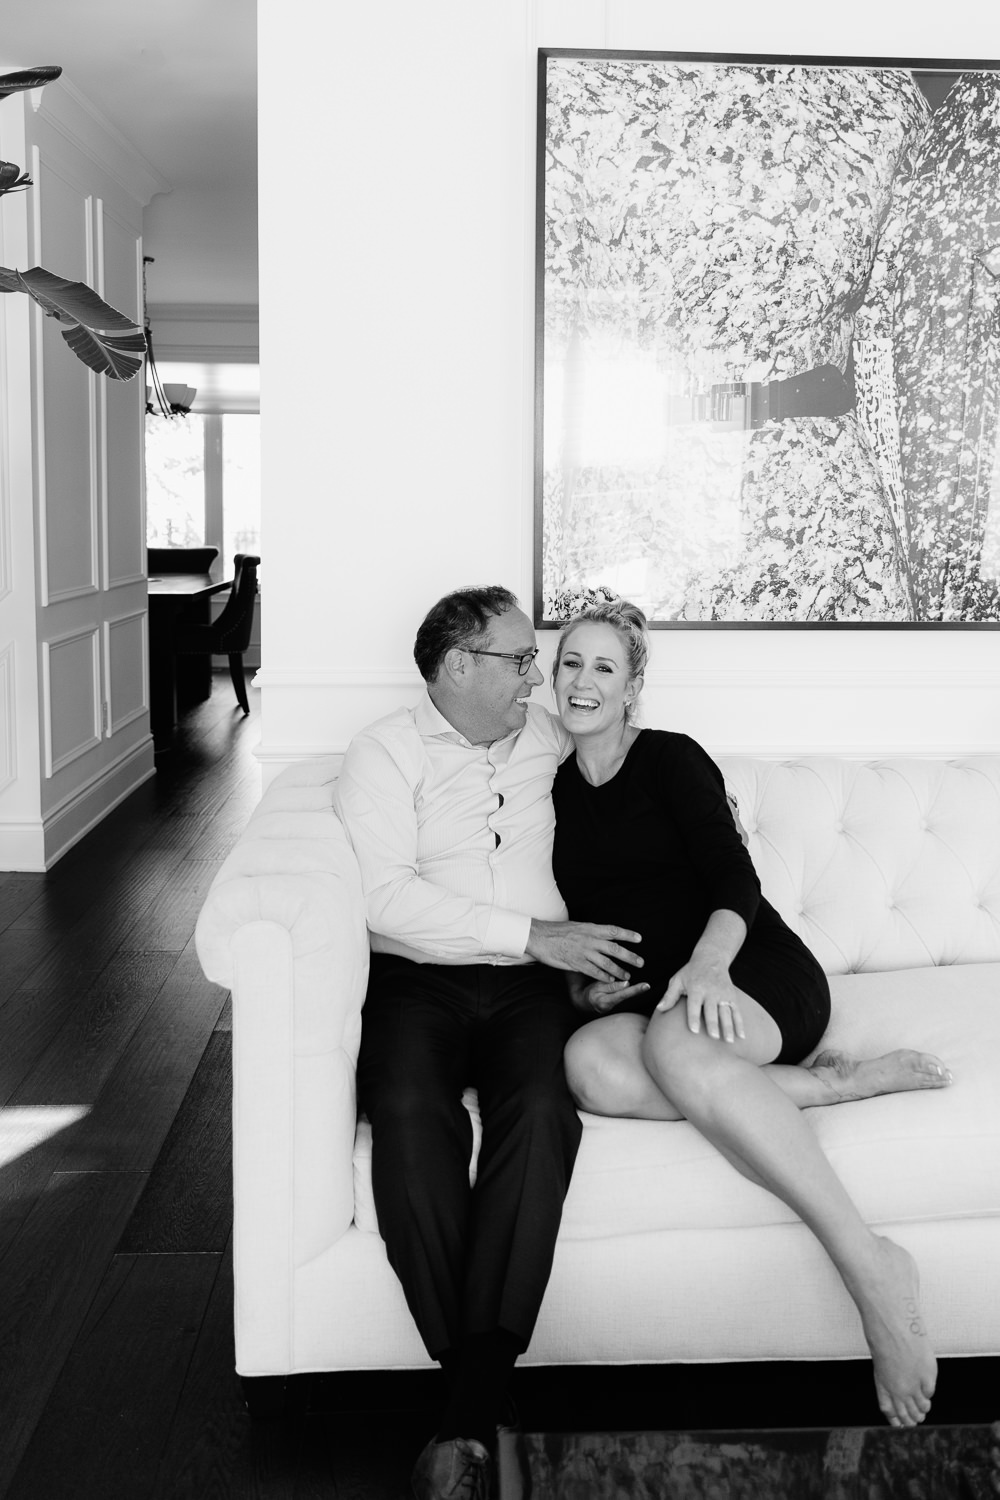 couple sitting together on couch smiling, husband's hand on pregnant wife's belly, woman wearing black dress and blonde hair in braid -Barrie In-Home Photography